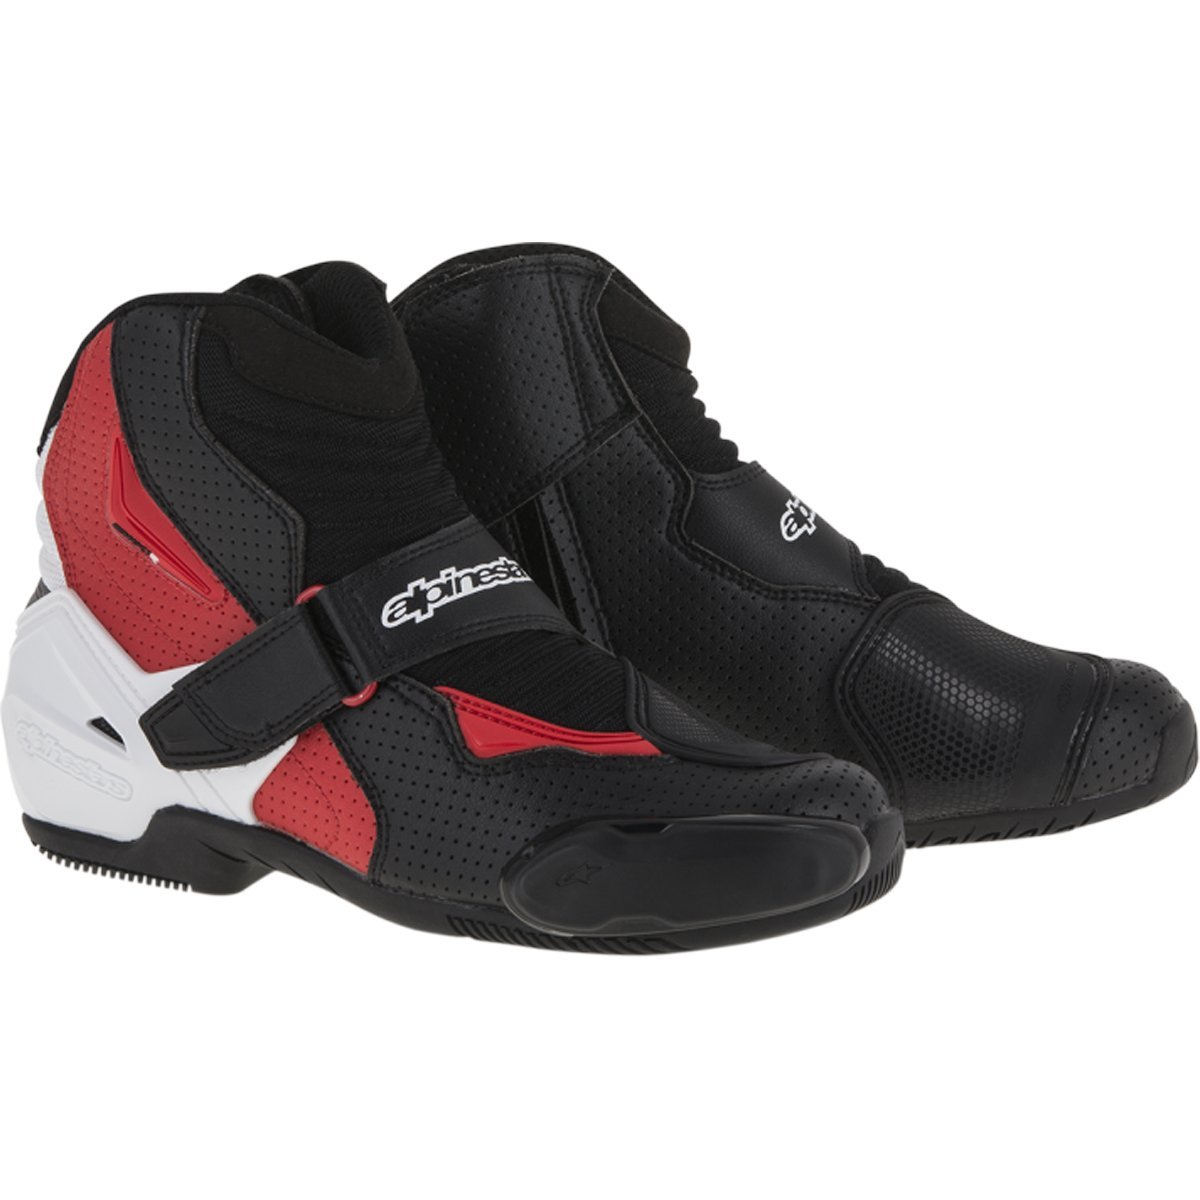 Alpinestars SMX-1R Vented Men's Street Motorcycle Shoes - Black/White/Red / 42